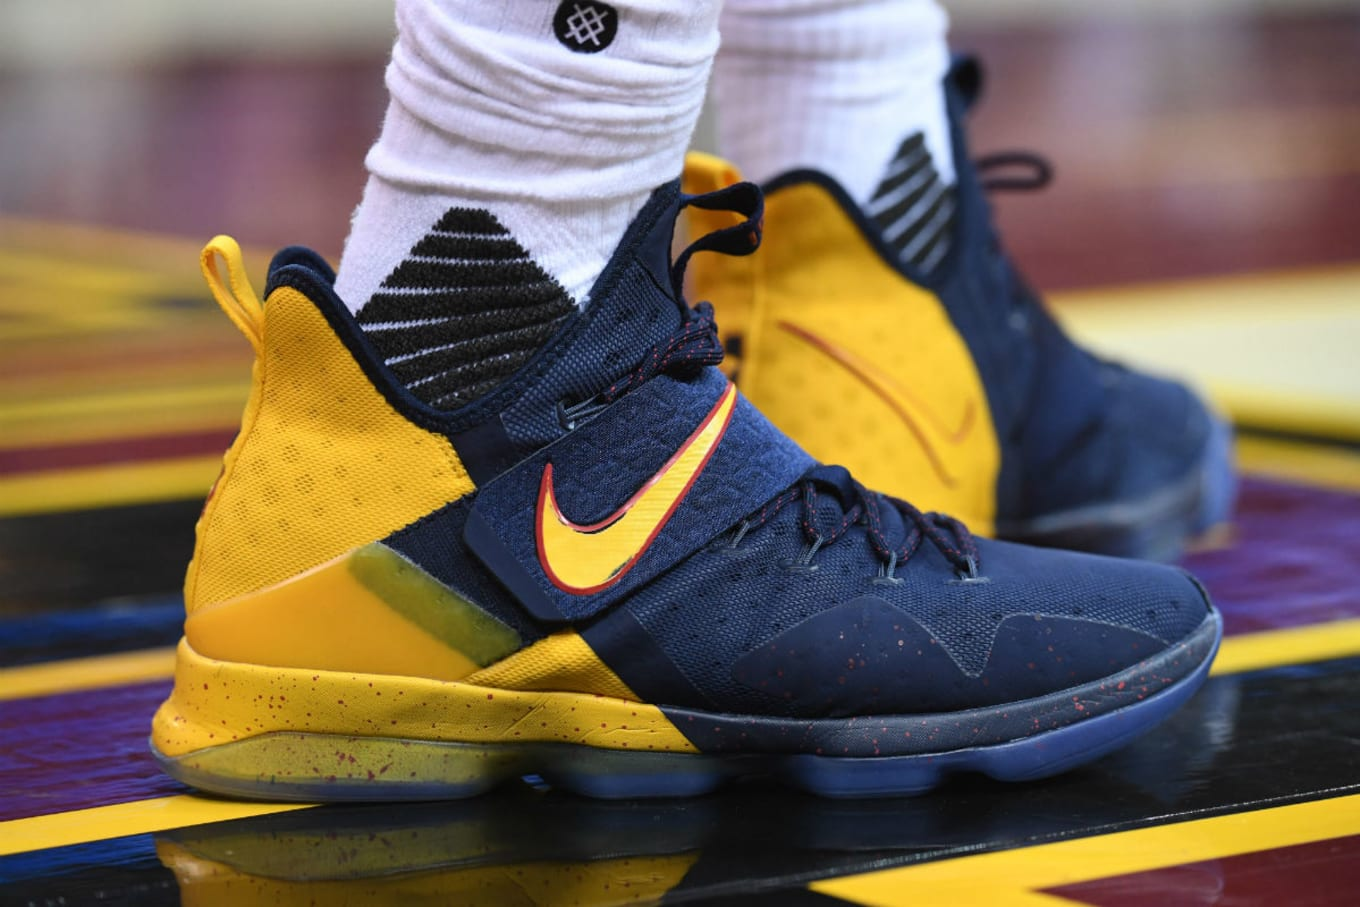 online store 2d0d1 fb3c7 LeBron James Nike LeBron 14 Navy/Yellow PE | Sole Collector